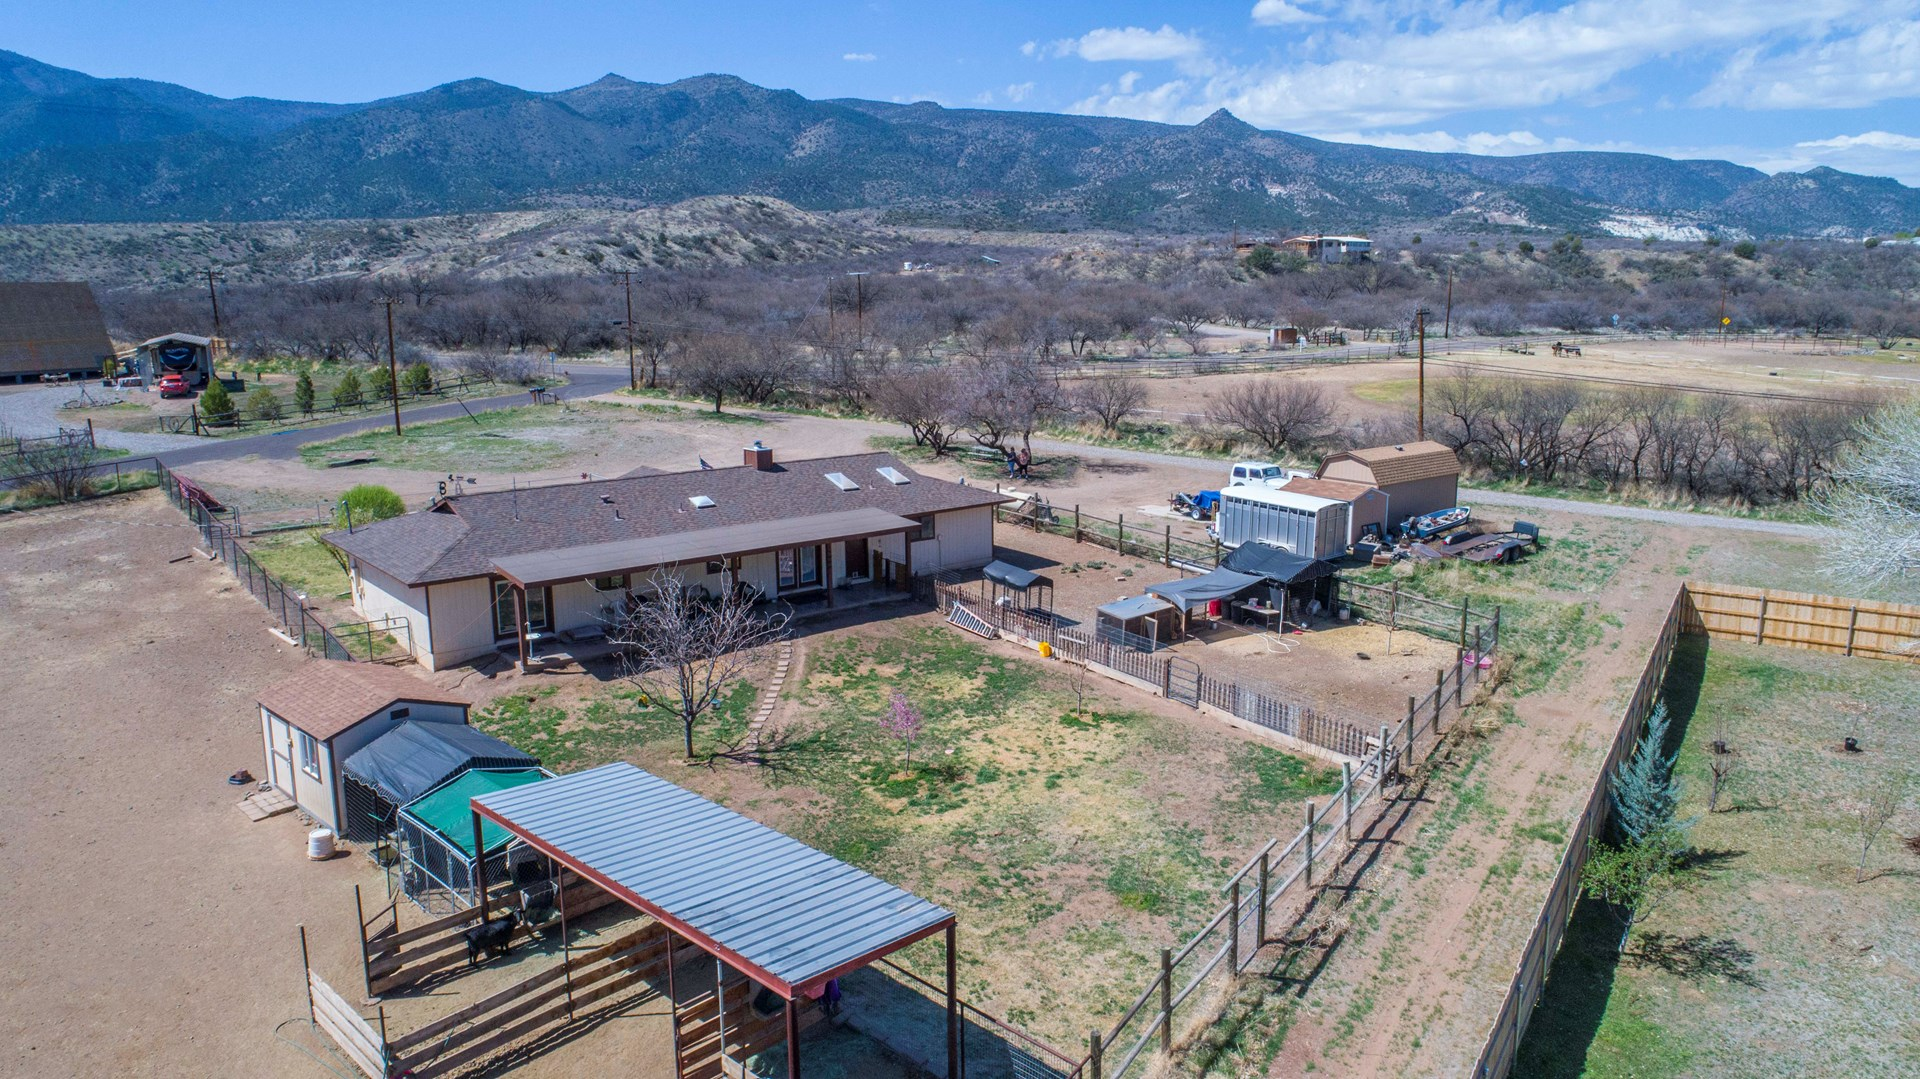 Horse Property For Sale Camp Verde AZ